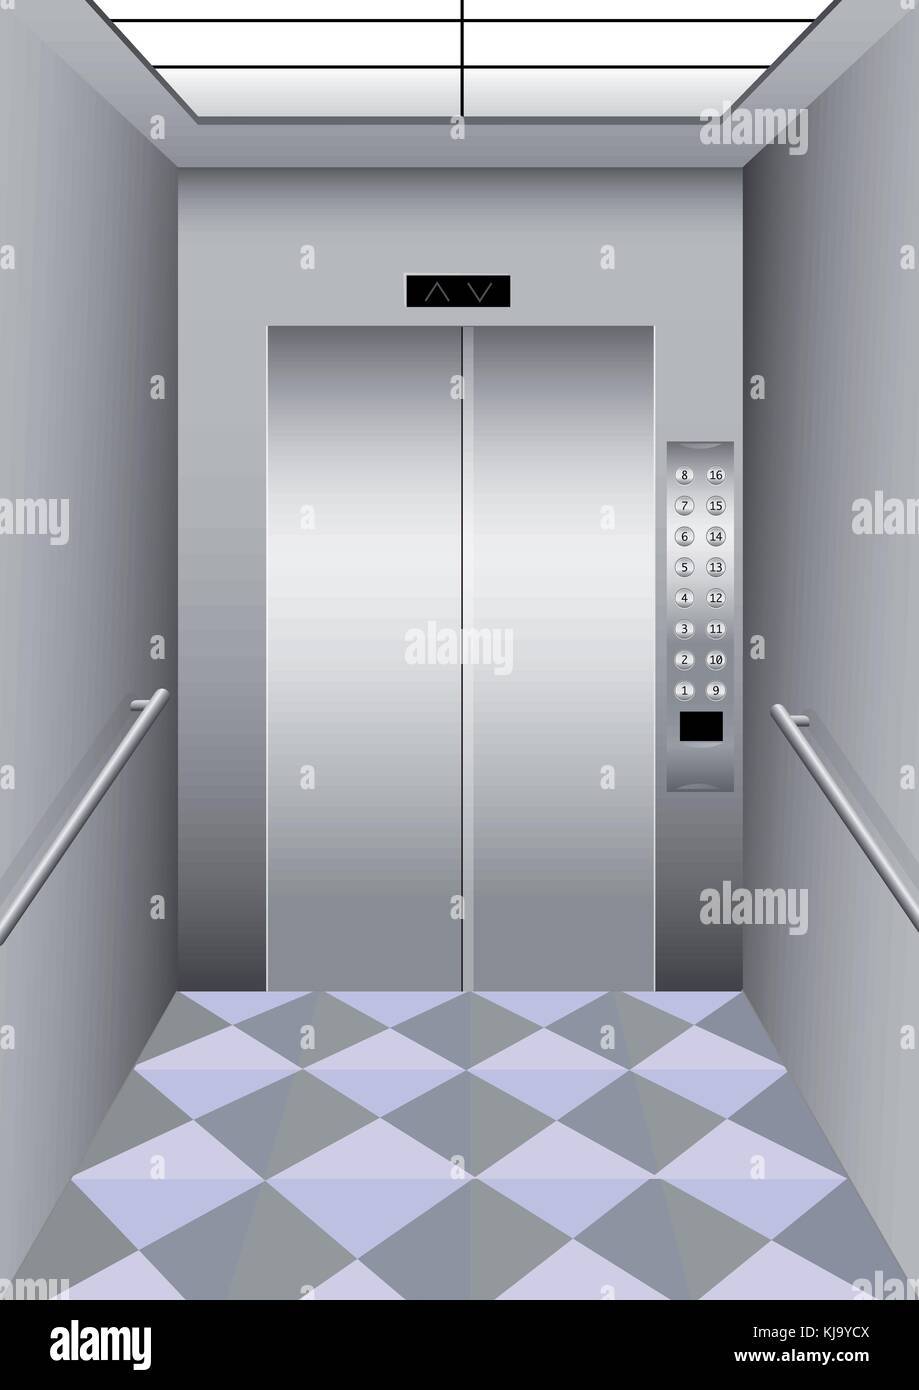 Illustration of a building elevator - Stock Vector